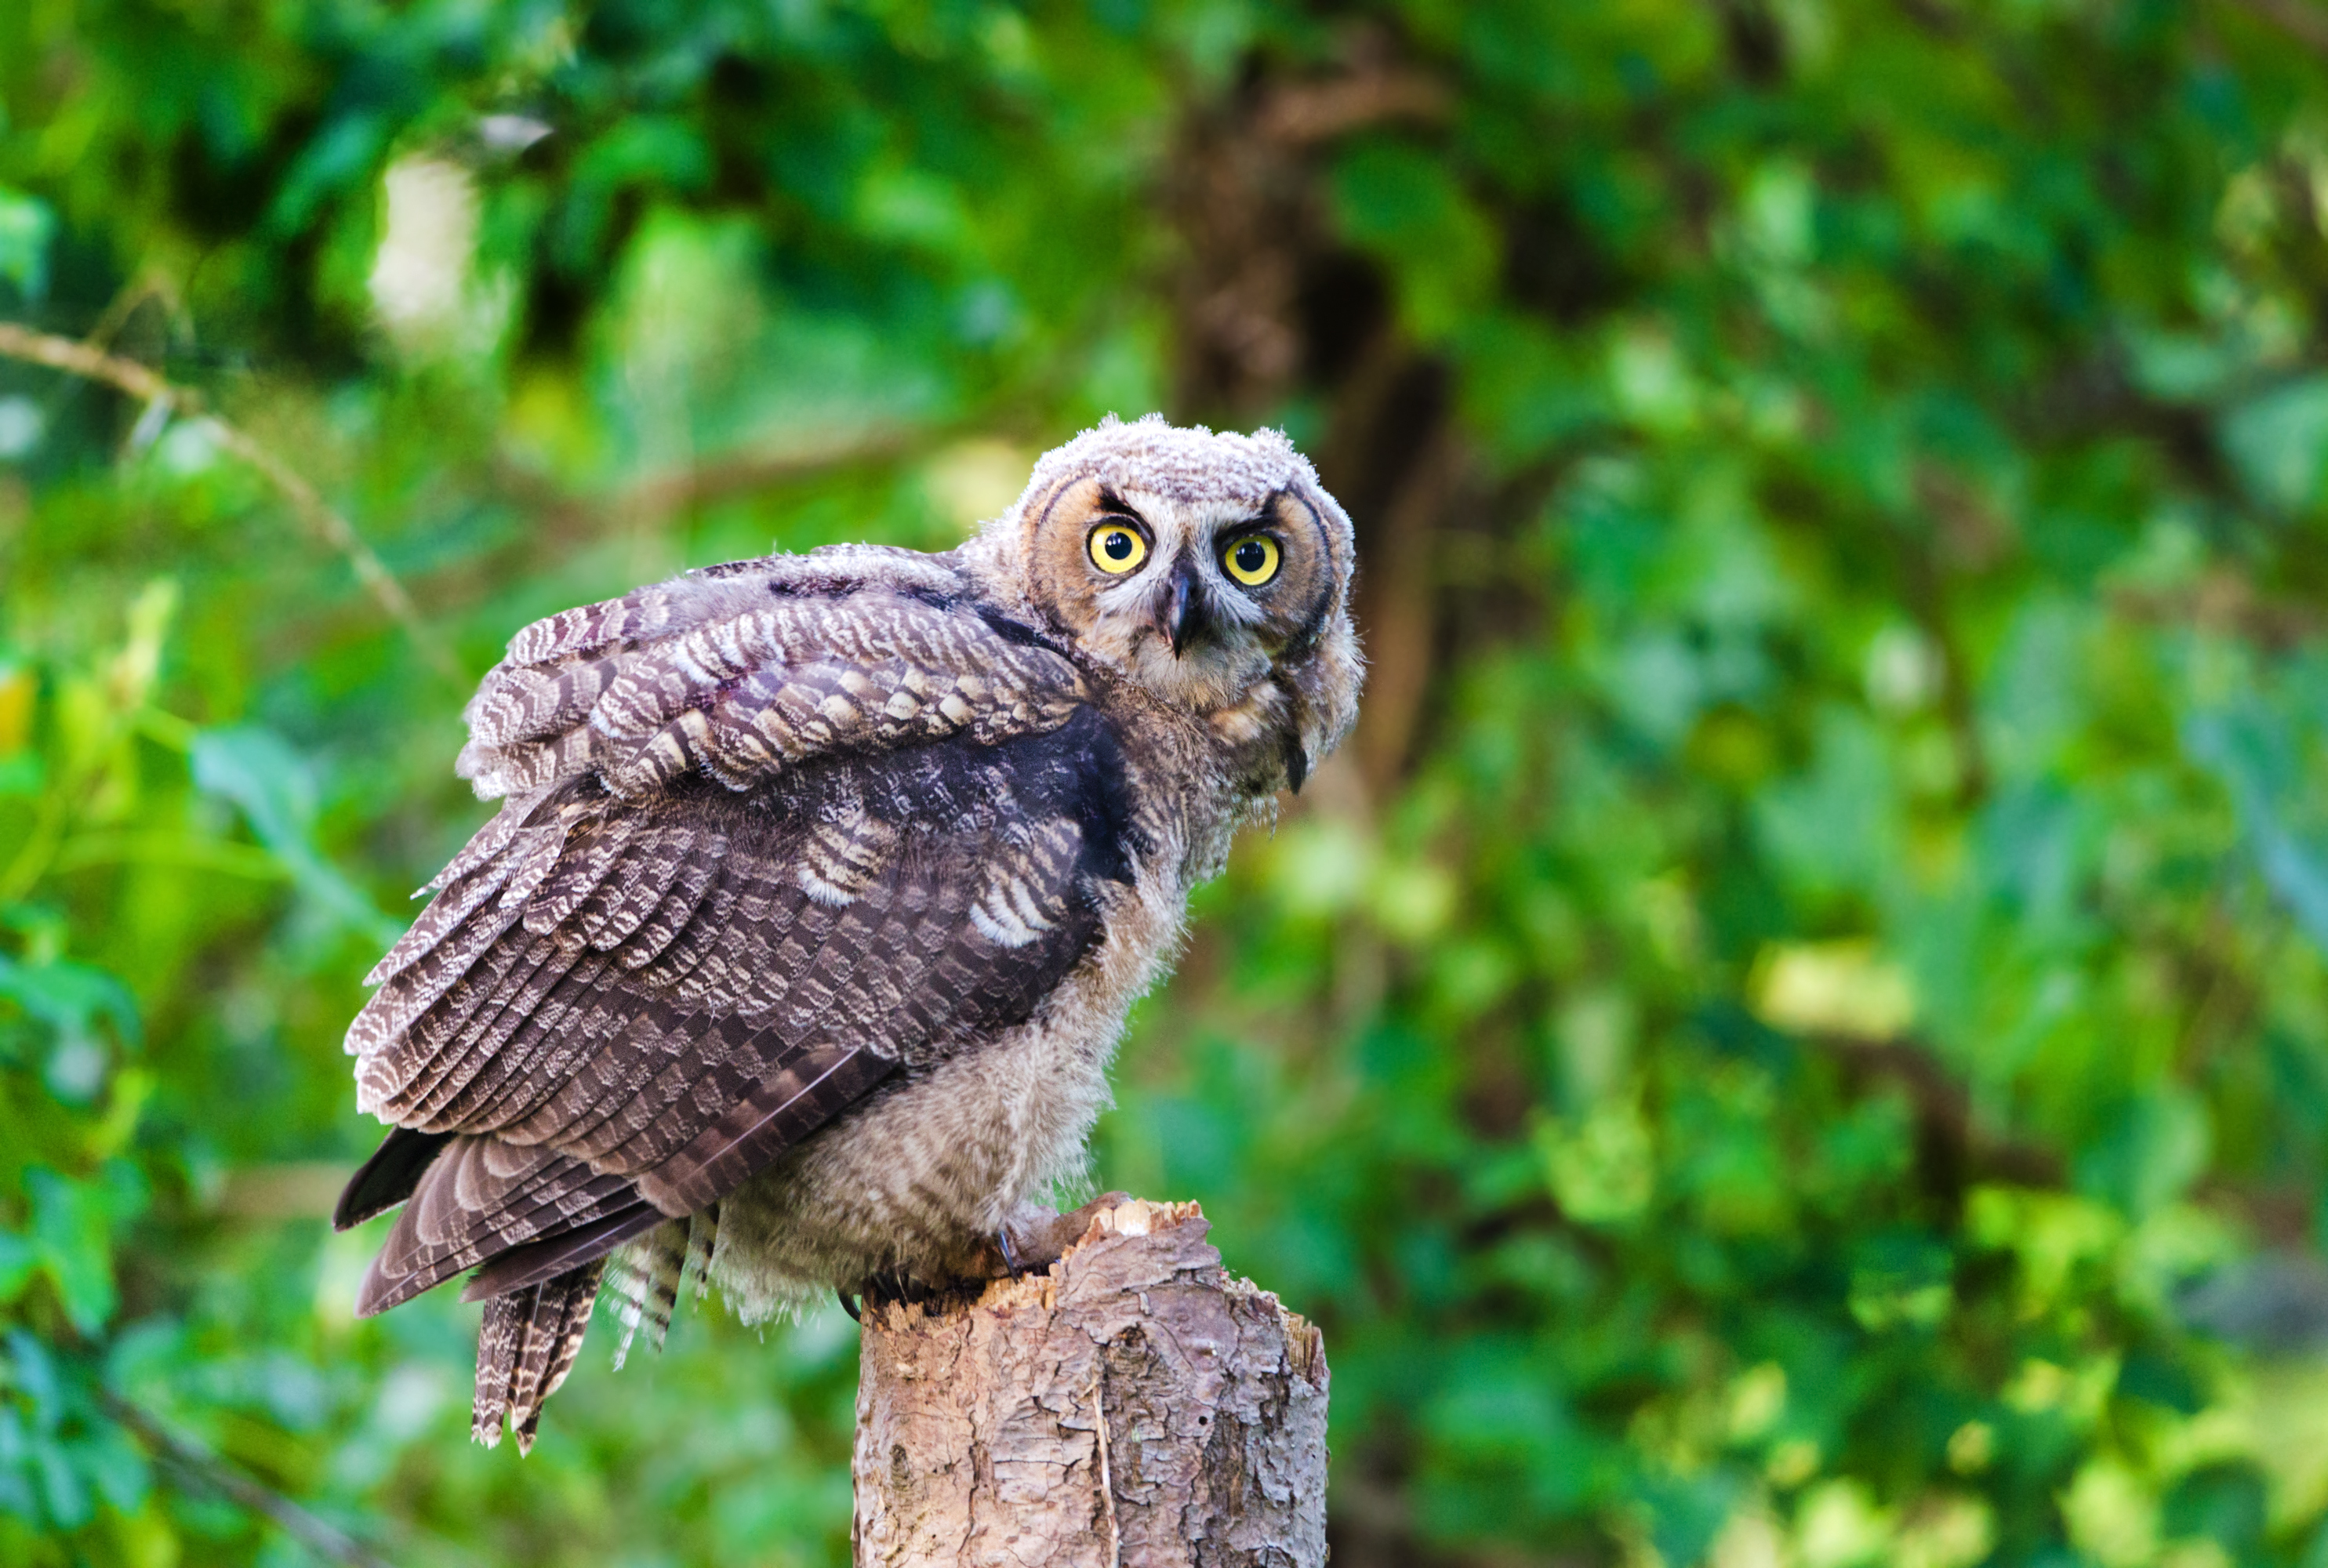 Great horned owl on top of a stump